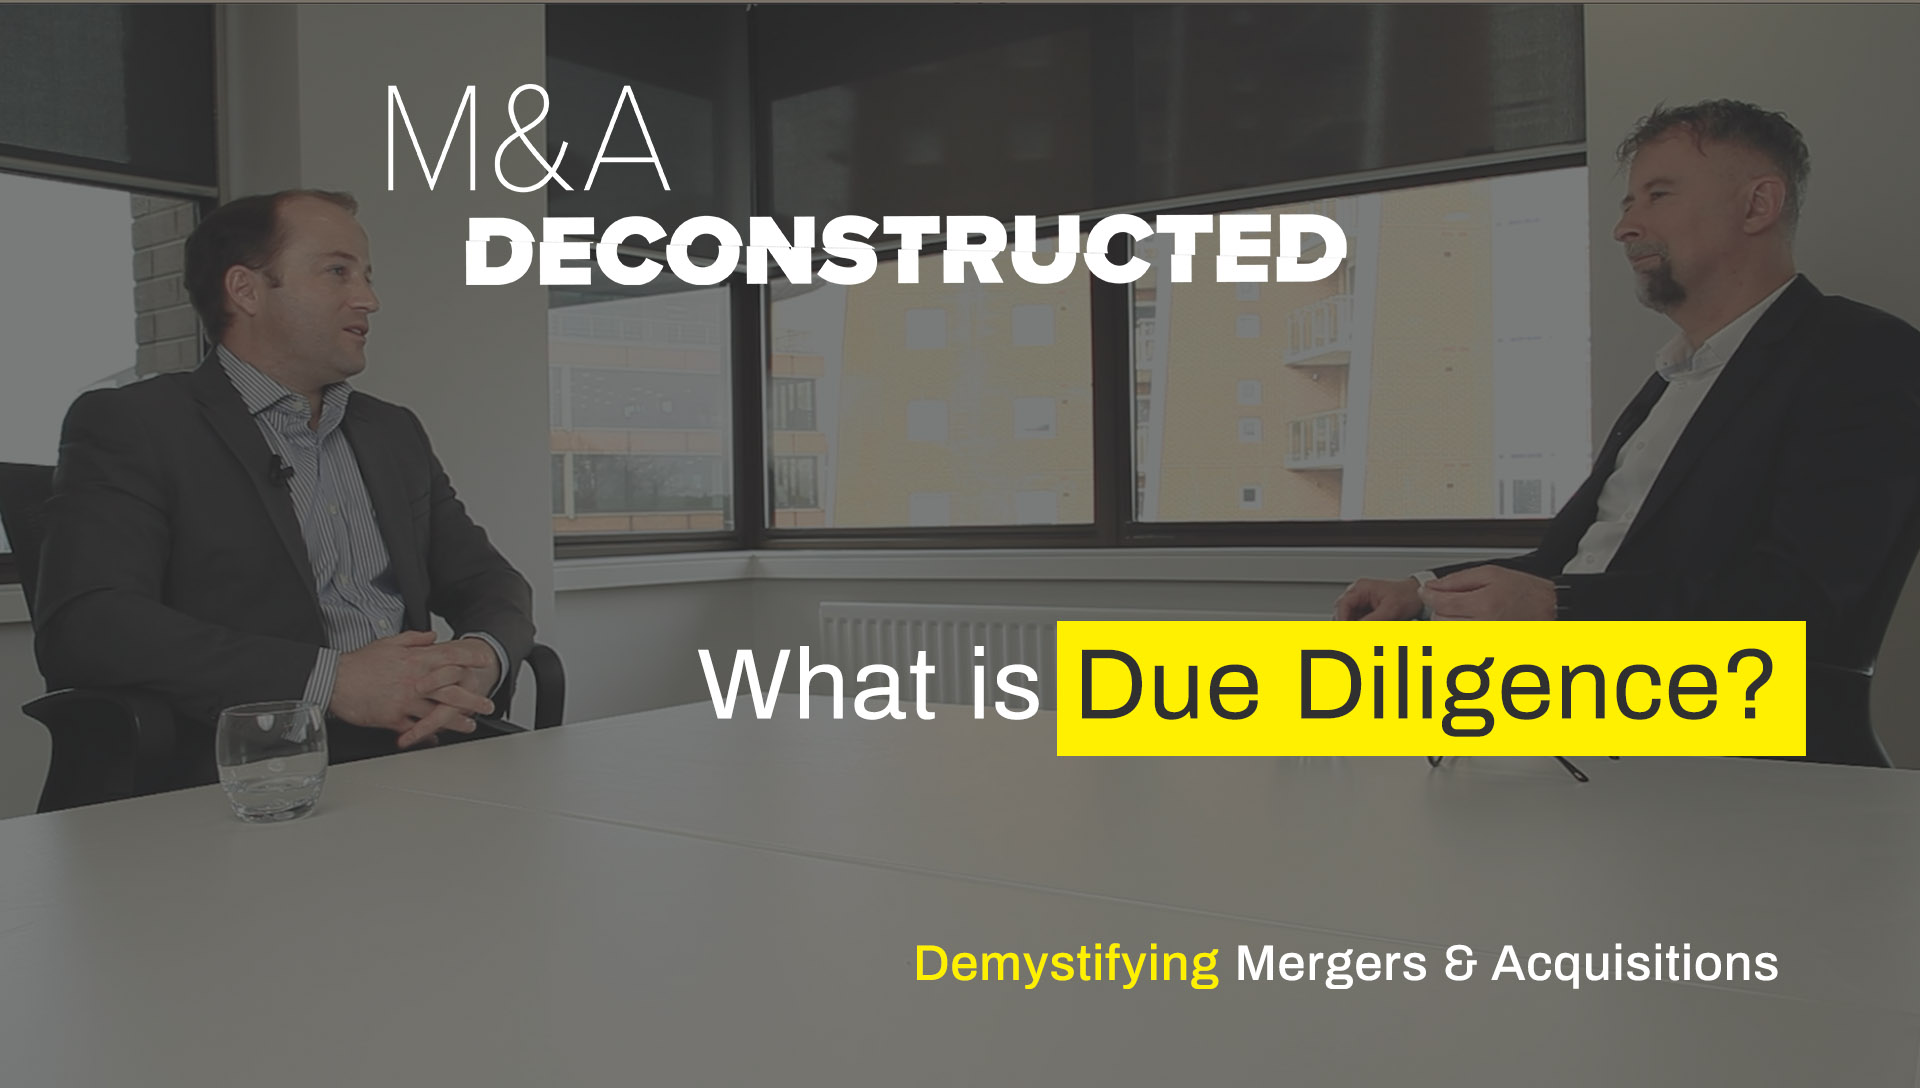 M&A Deconstructed - What is Due Diligence?